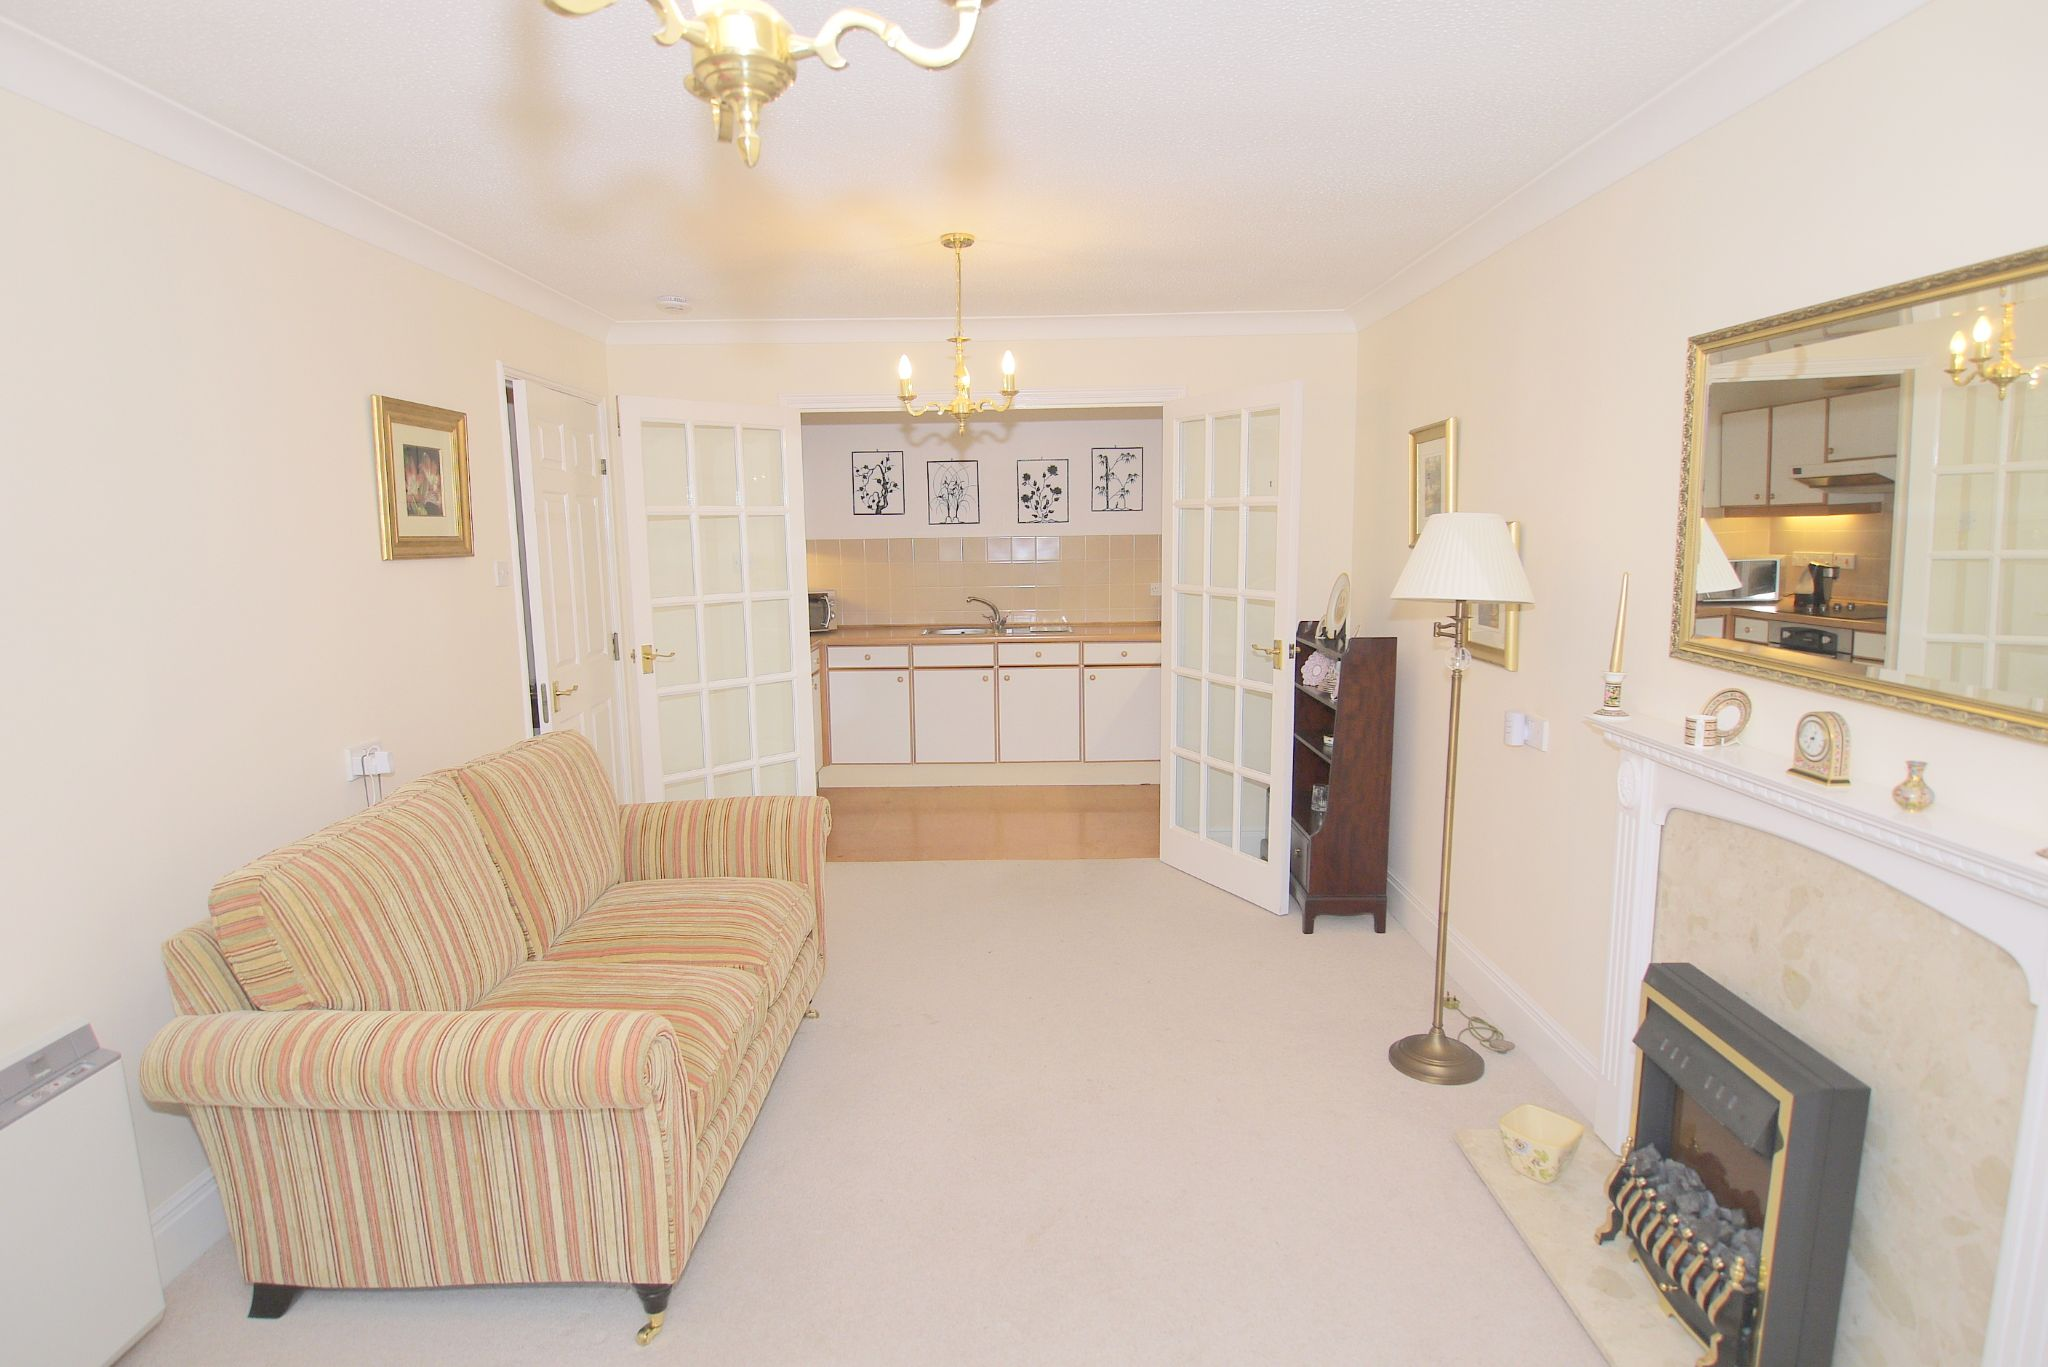 2 bedroom apartment For Sale in Sevenoaks - Photograph 2